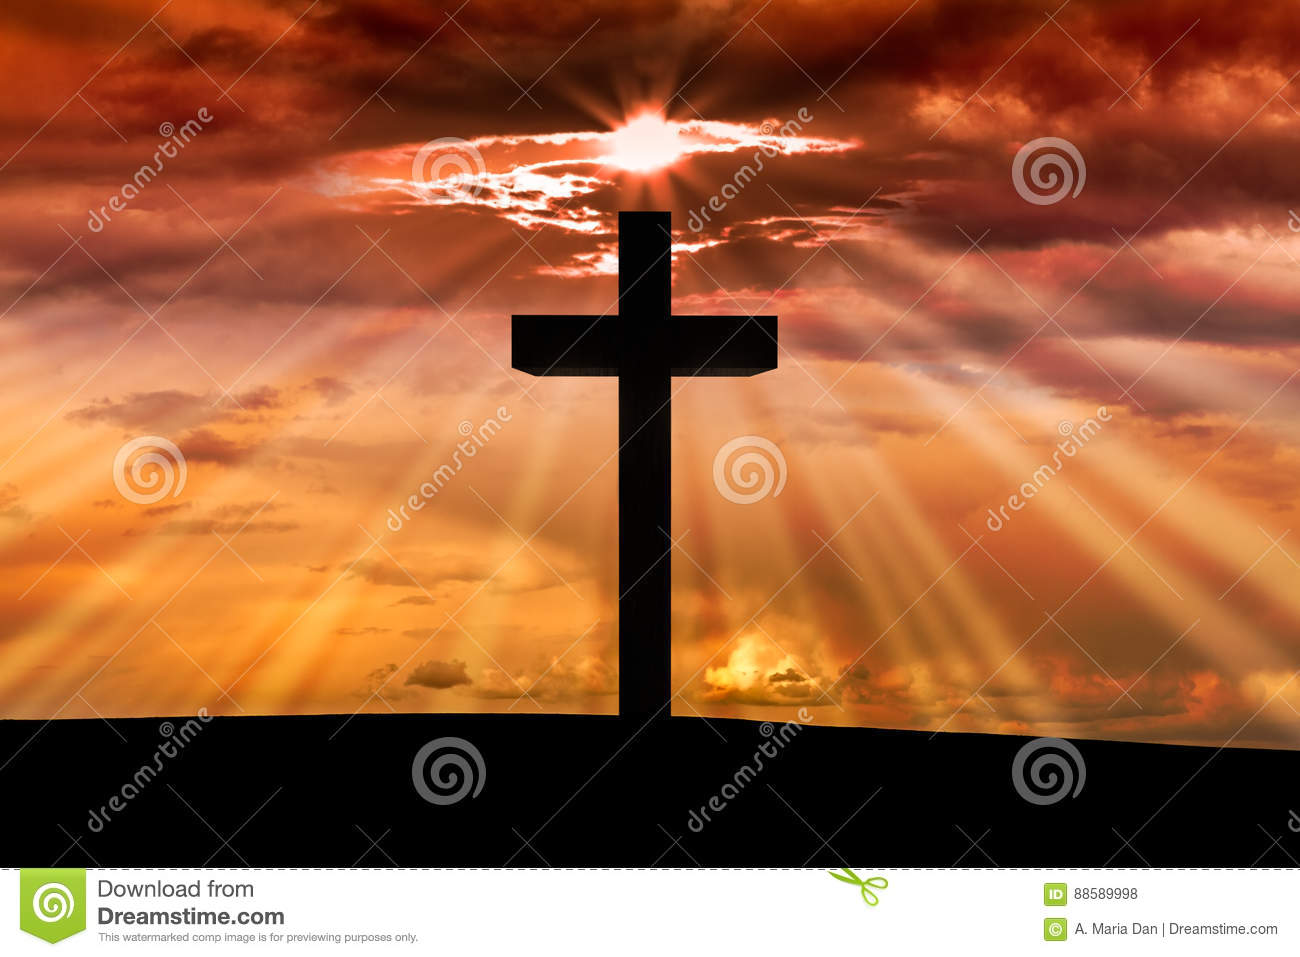 Jesus Christ wooden cross on a scene with dark red orange sunset,